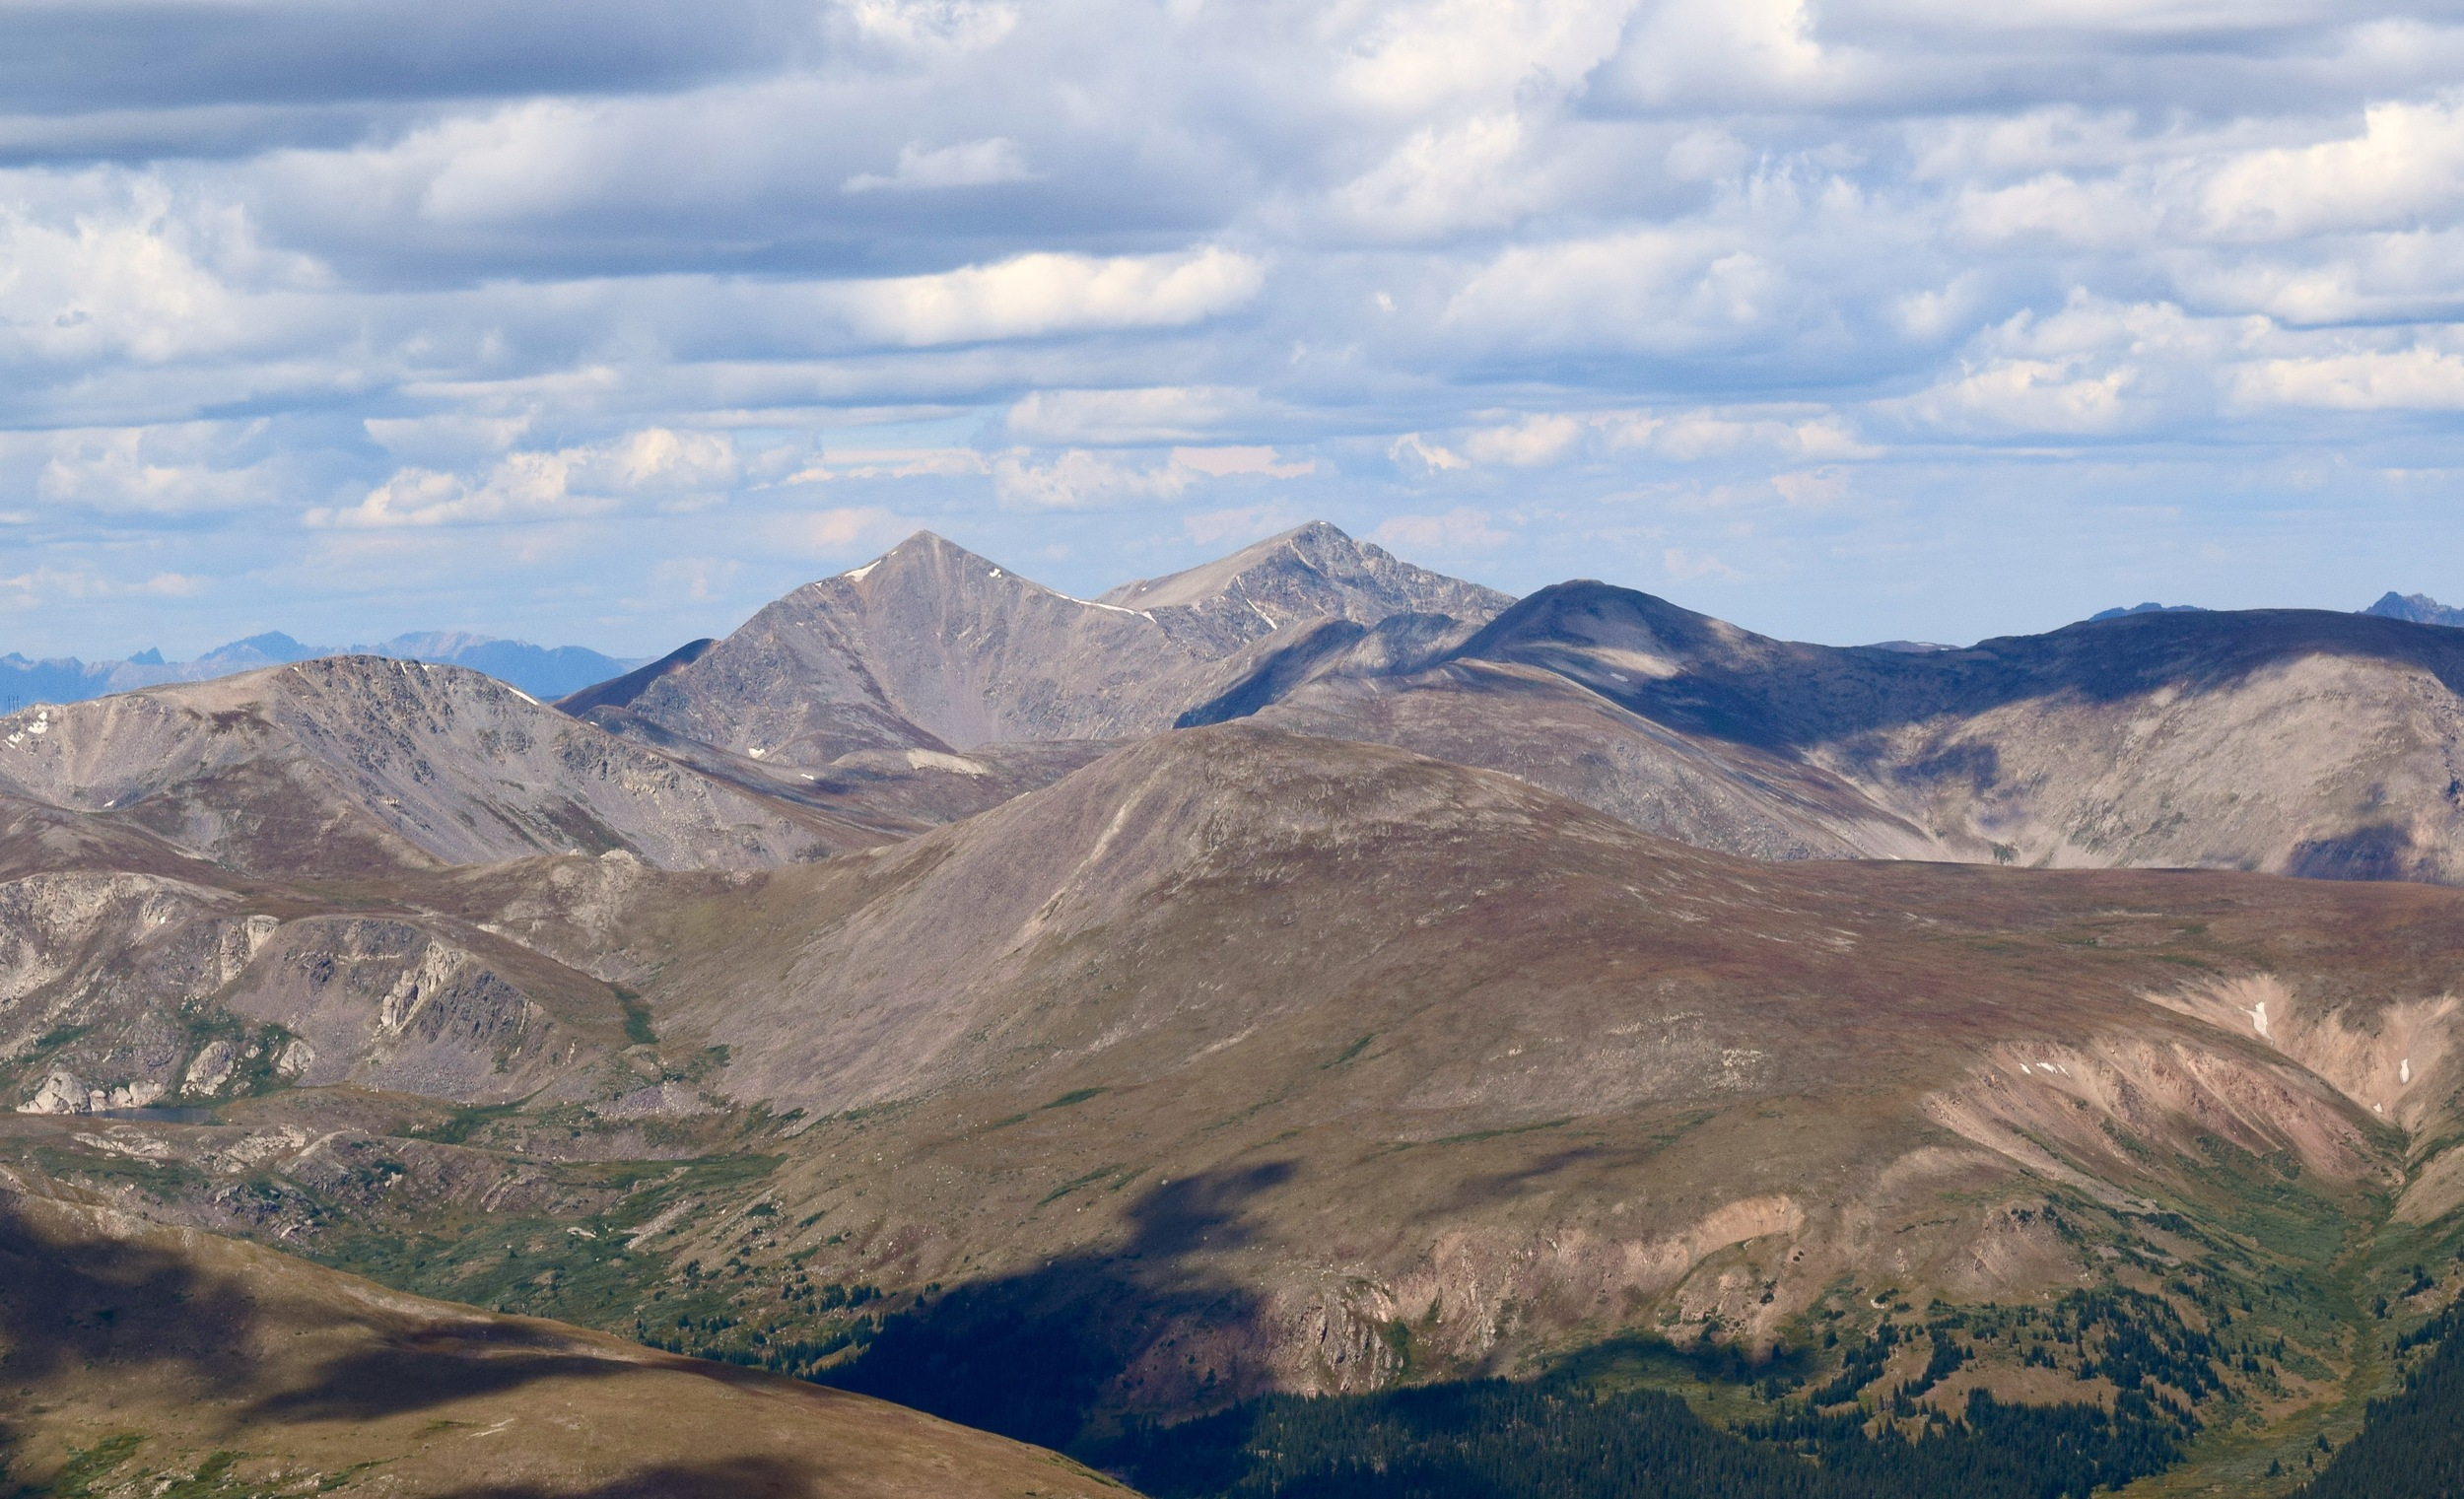 Looking out towards Greys & Torreys Peaks. These will probably be the next 14ers we attempt in the spring!